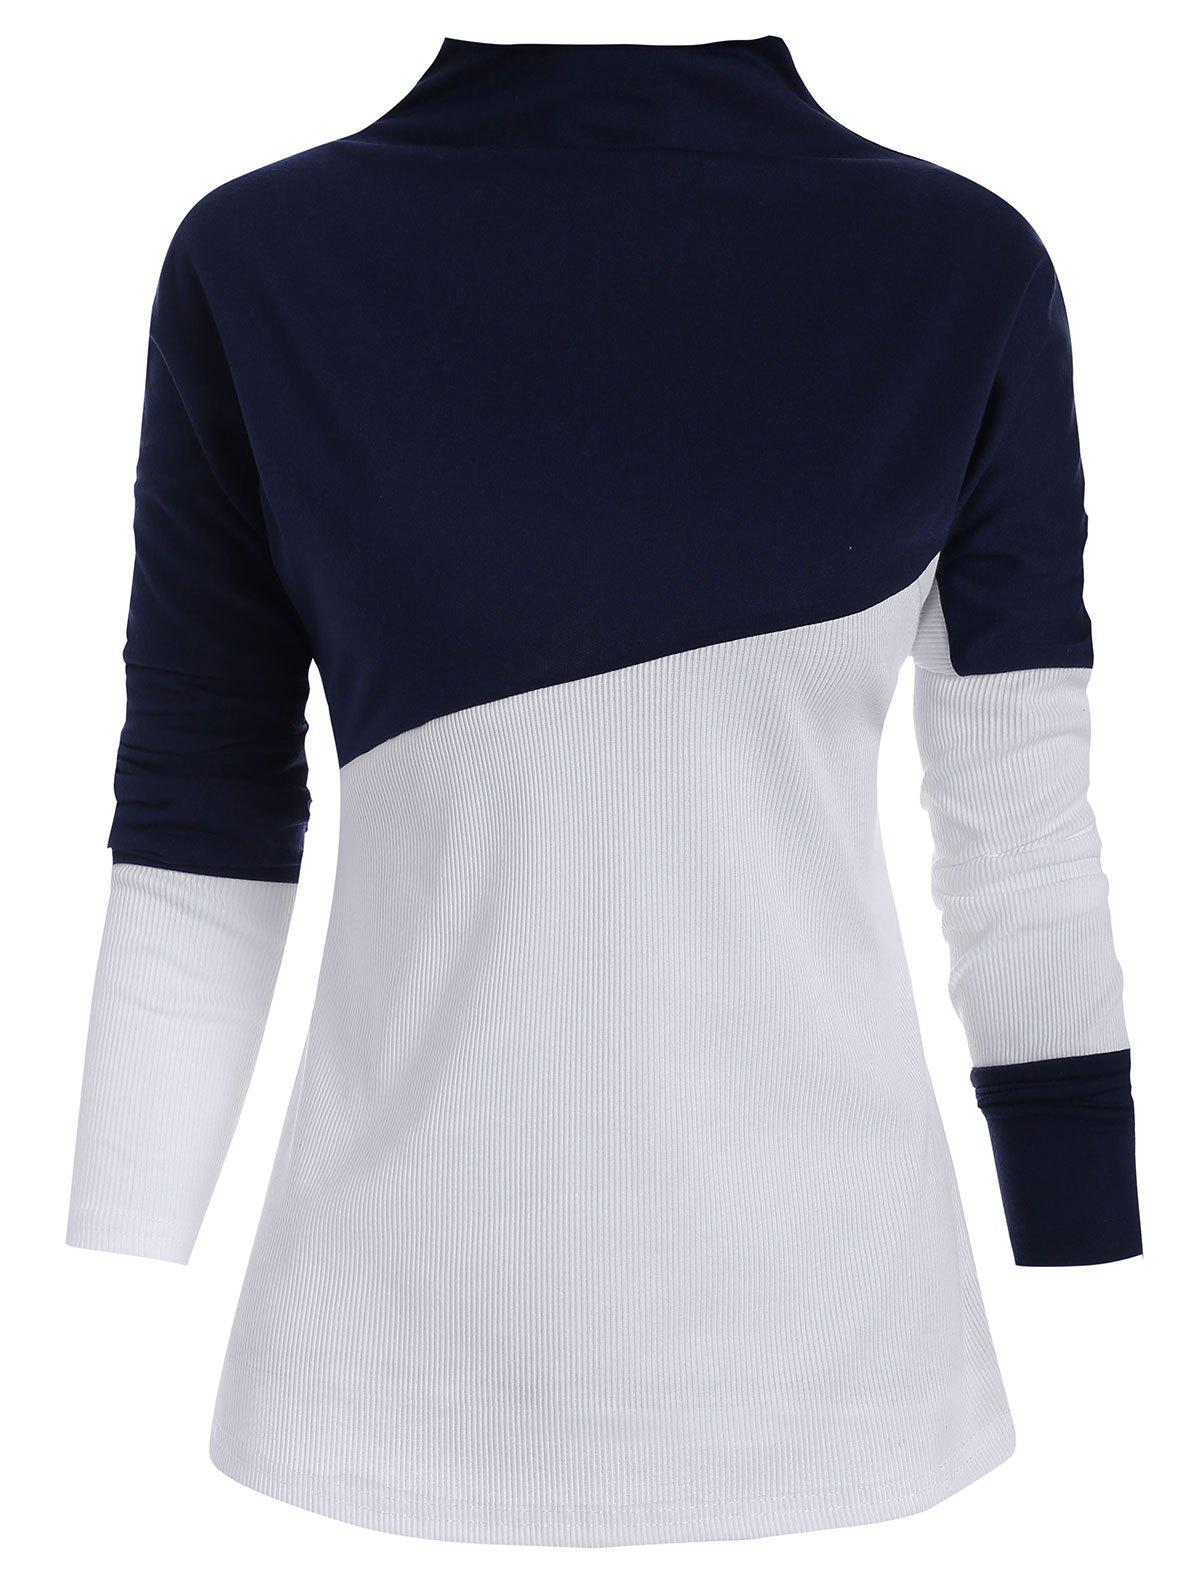 Slash Neck Colorblock Longline Top - DEEP BLUE M